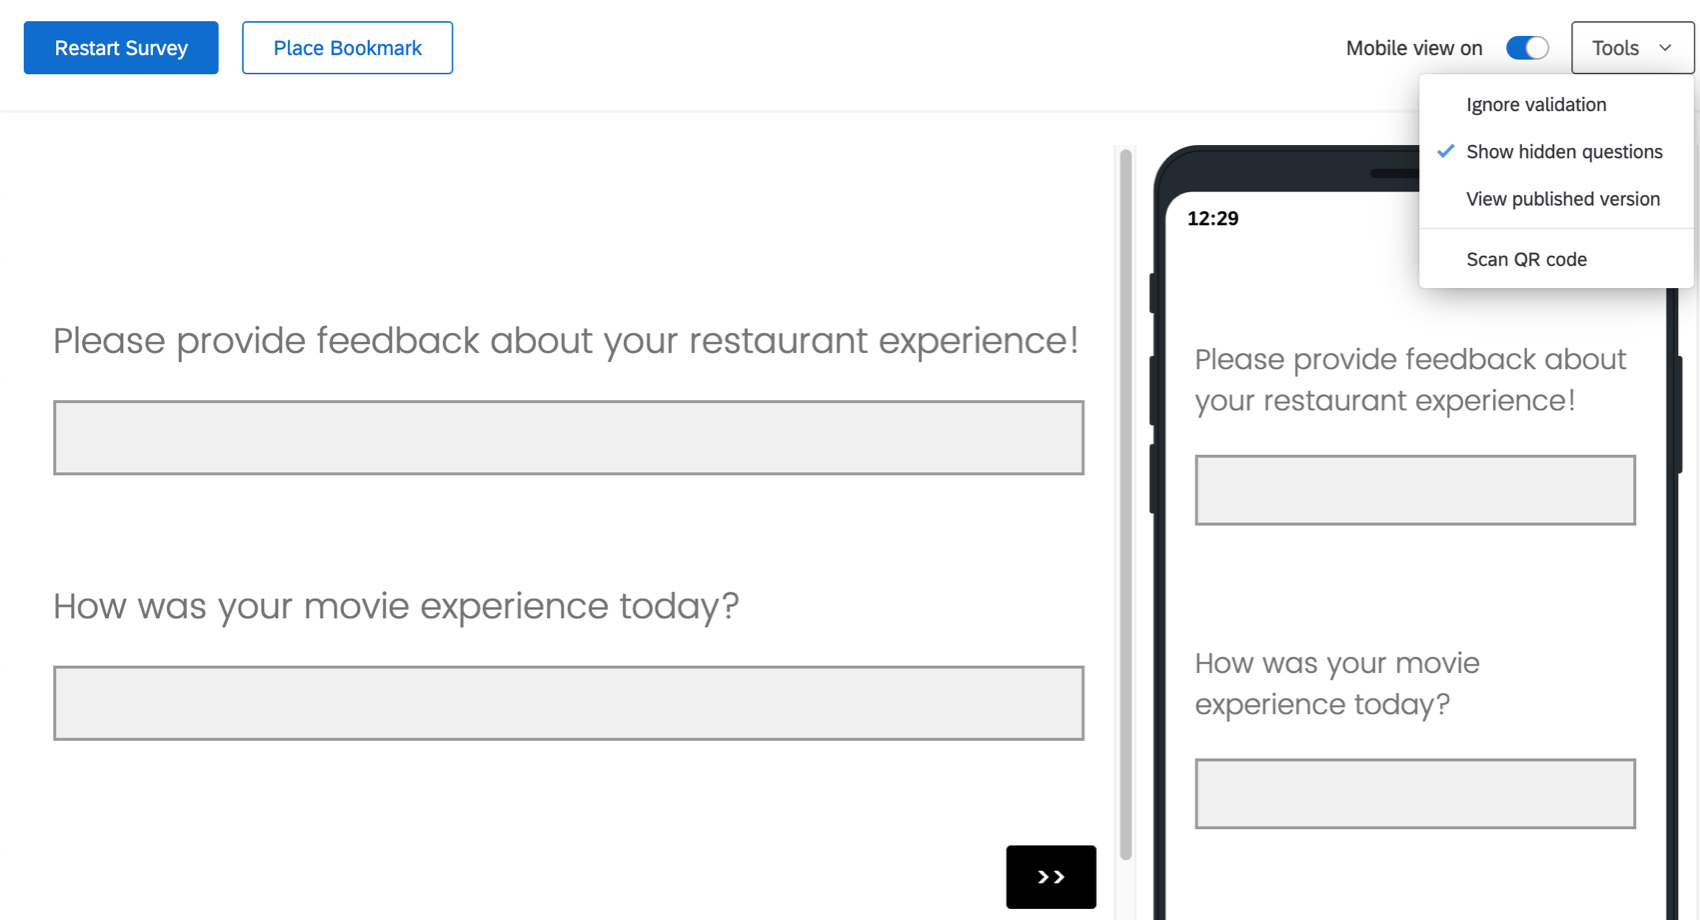 Preview Survey screen